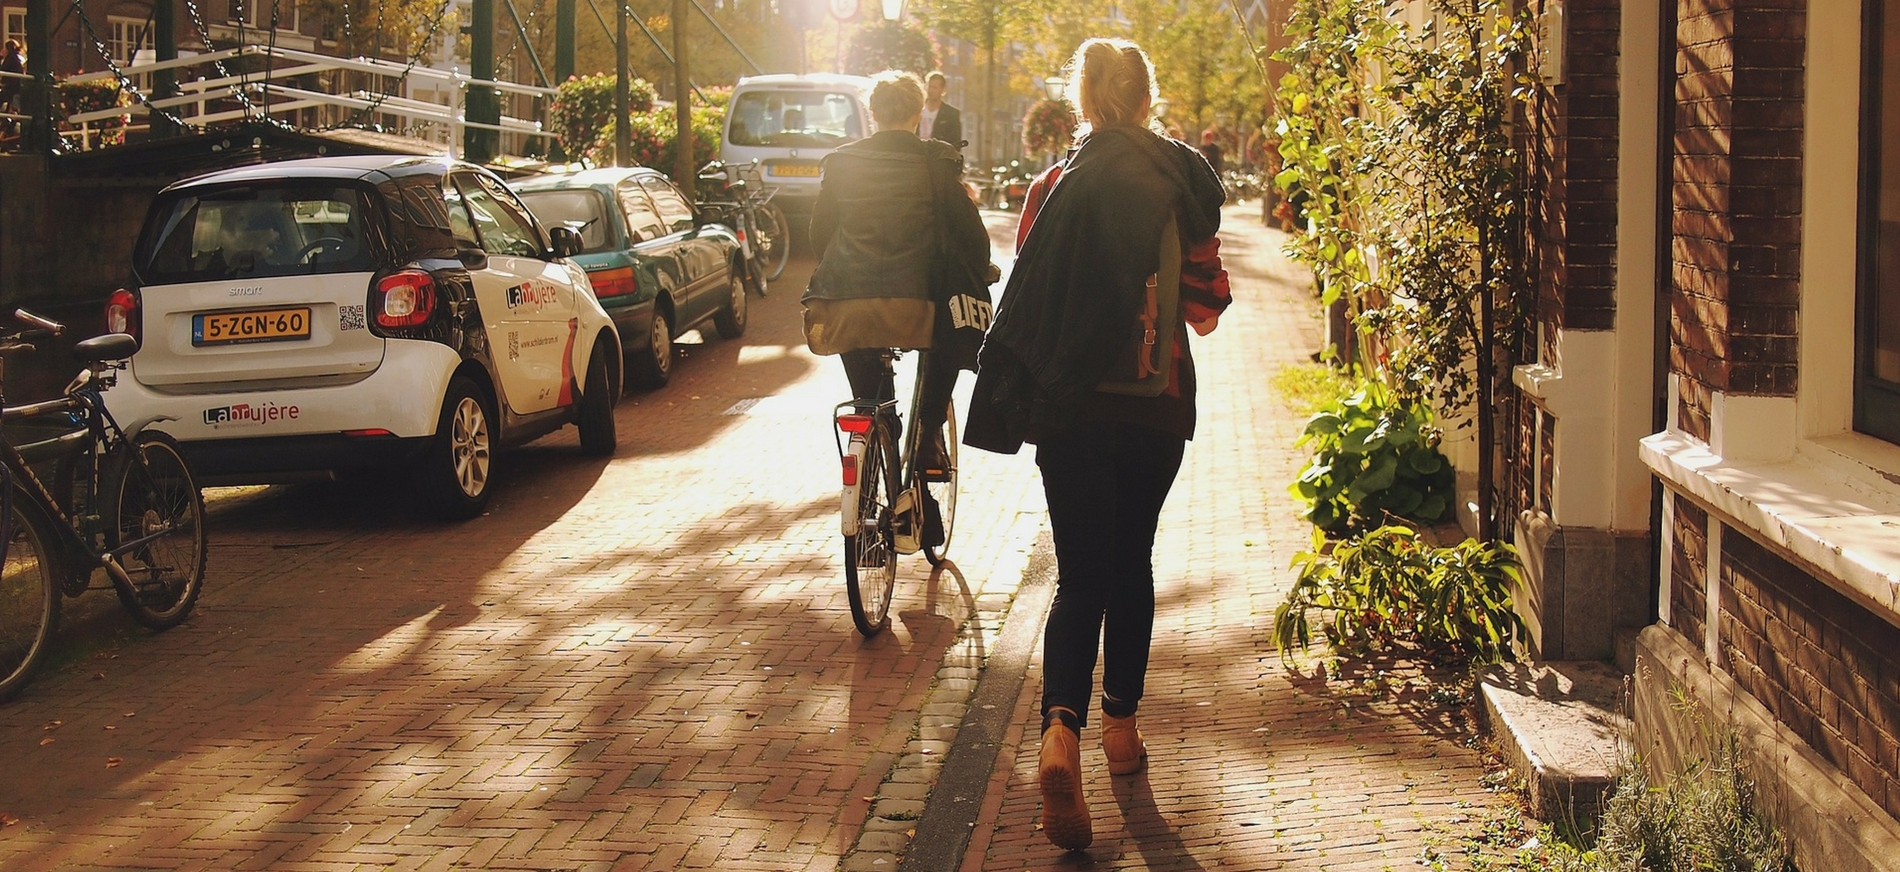 Ways College Students Can Save Energy, Reduce Waste, & Go Green - Transportation